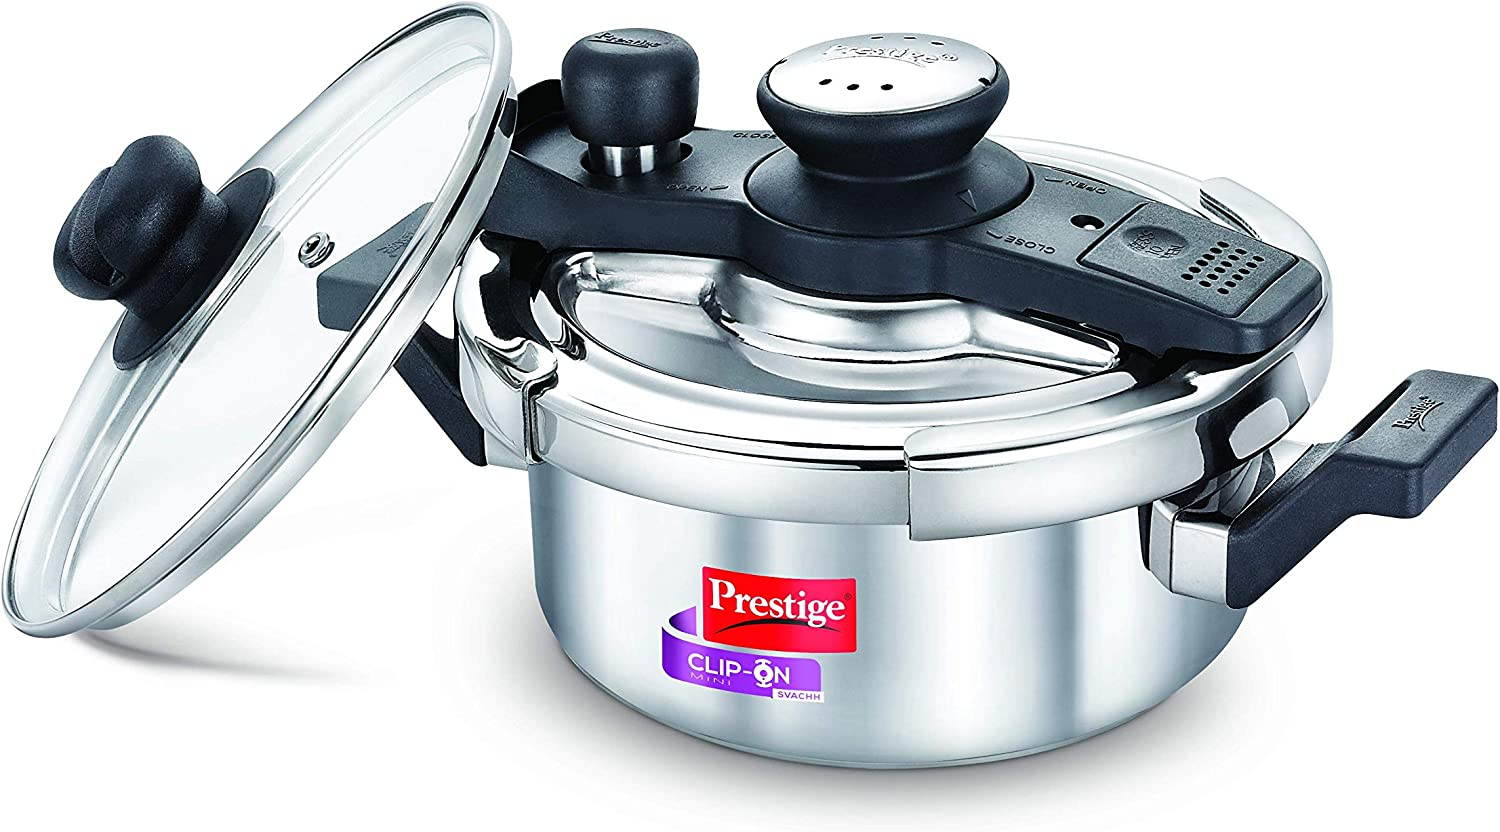 Prestige Svachh Clip-on Mini Stainless Steel 2 Litre Pressure Cooker